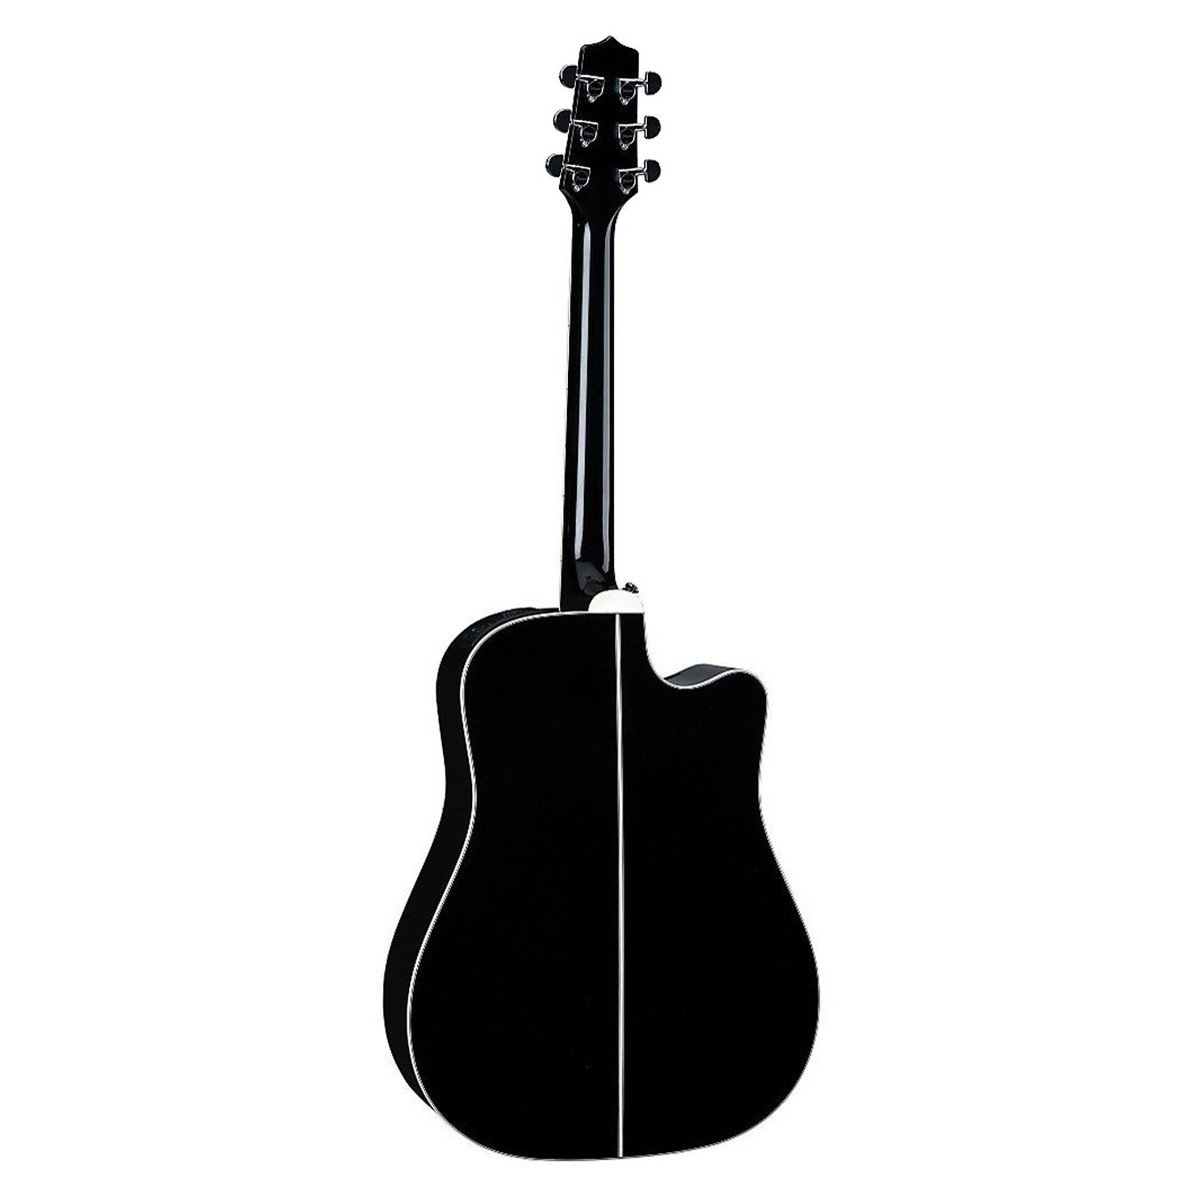 takamine ef341sc lh left handed electro acoustic guitar black at gear4music. Black Bedroom Furniture Sets. Home Design Ideas